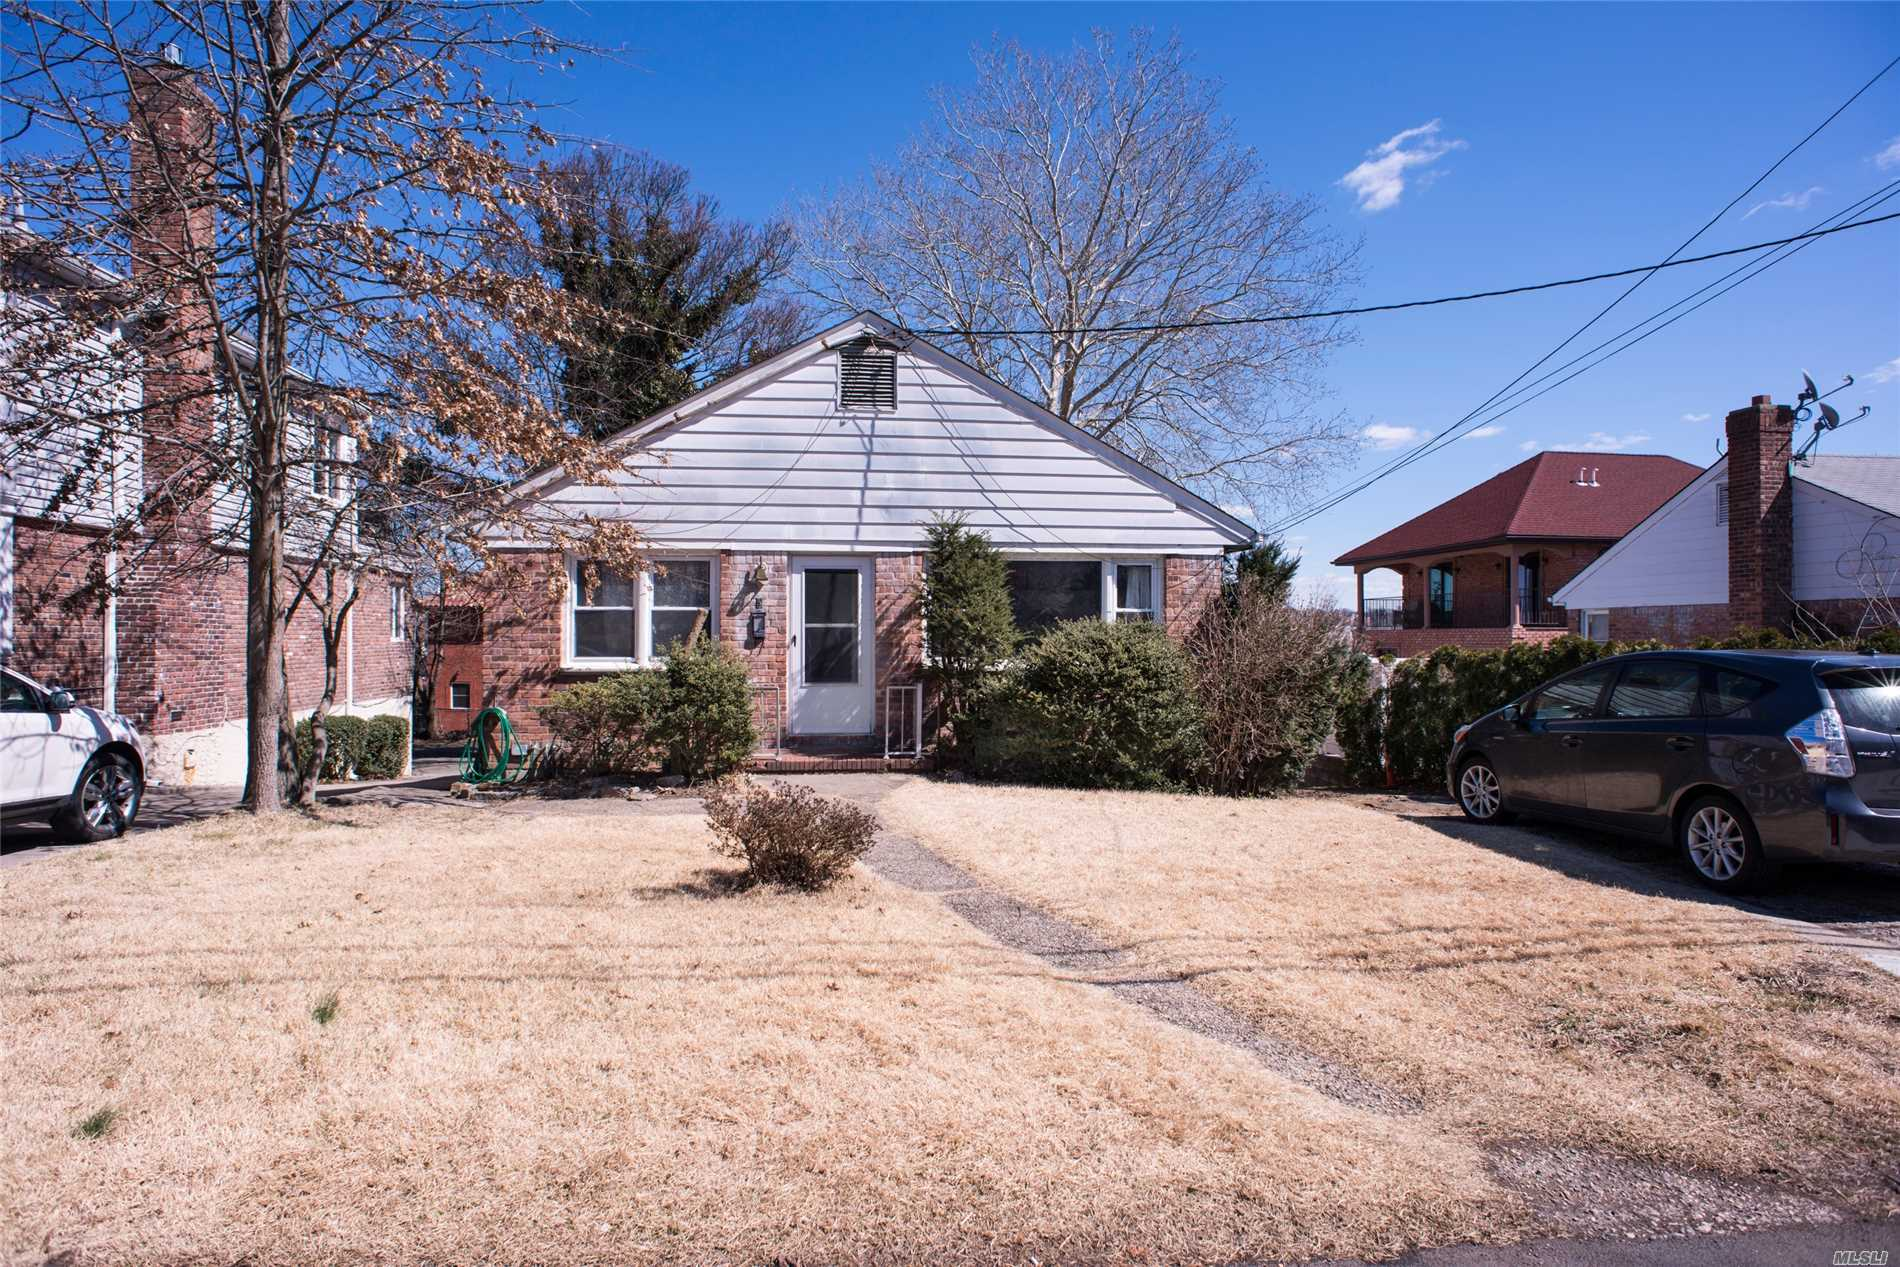 Beautiful, quiet street. Great opportunity to own this quaint ranch home in highly sought after north Bayside location. Partial views of Little Neck Bay. Close proximity to Northern Blvd., Bell Blvd., Bay Terrace shopping center, Bayside LIRR, buses and major highways.